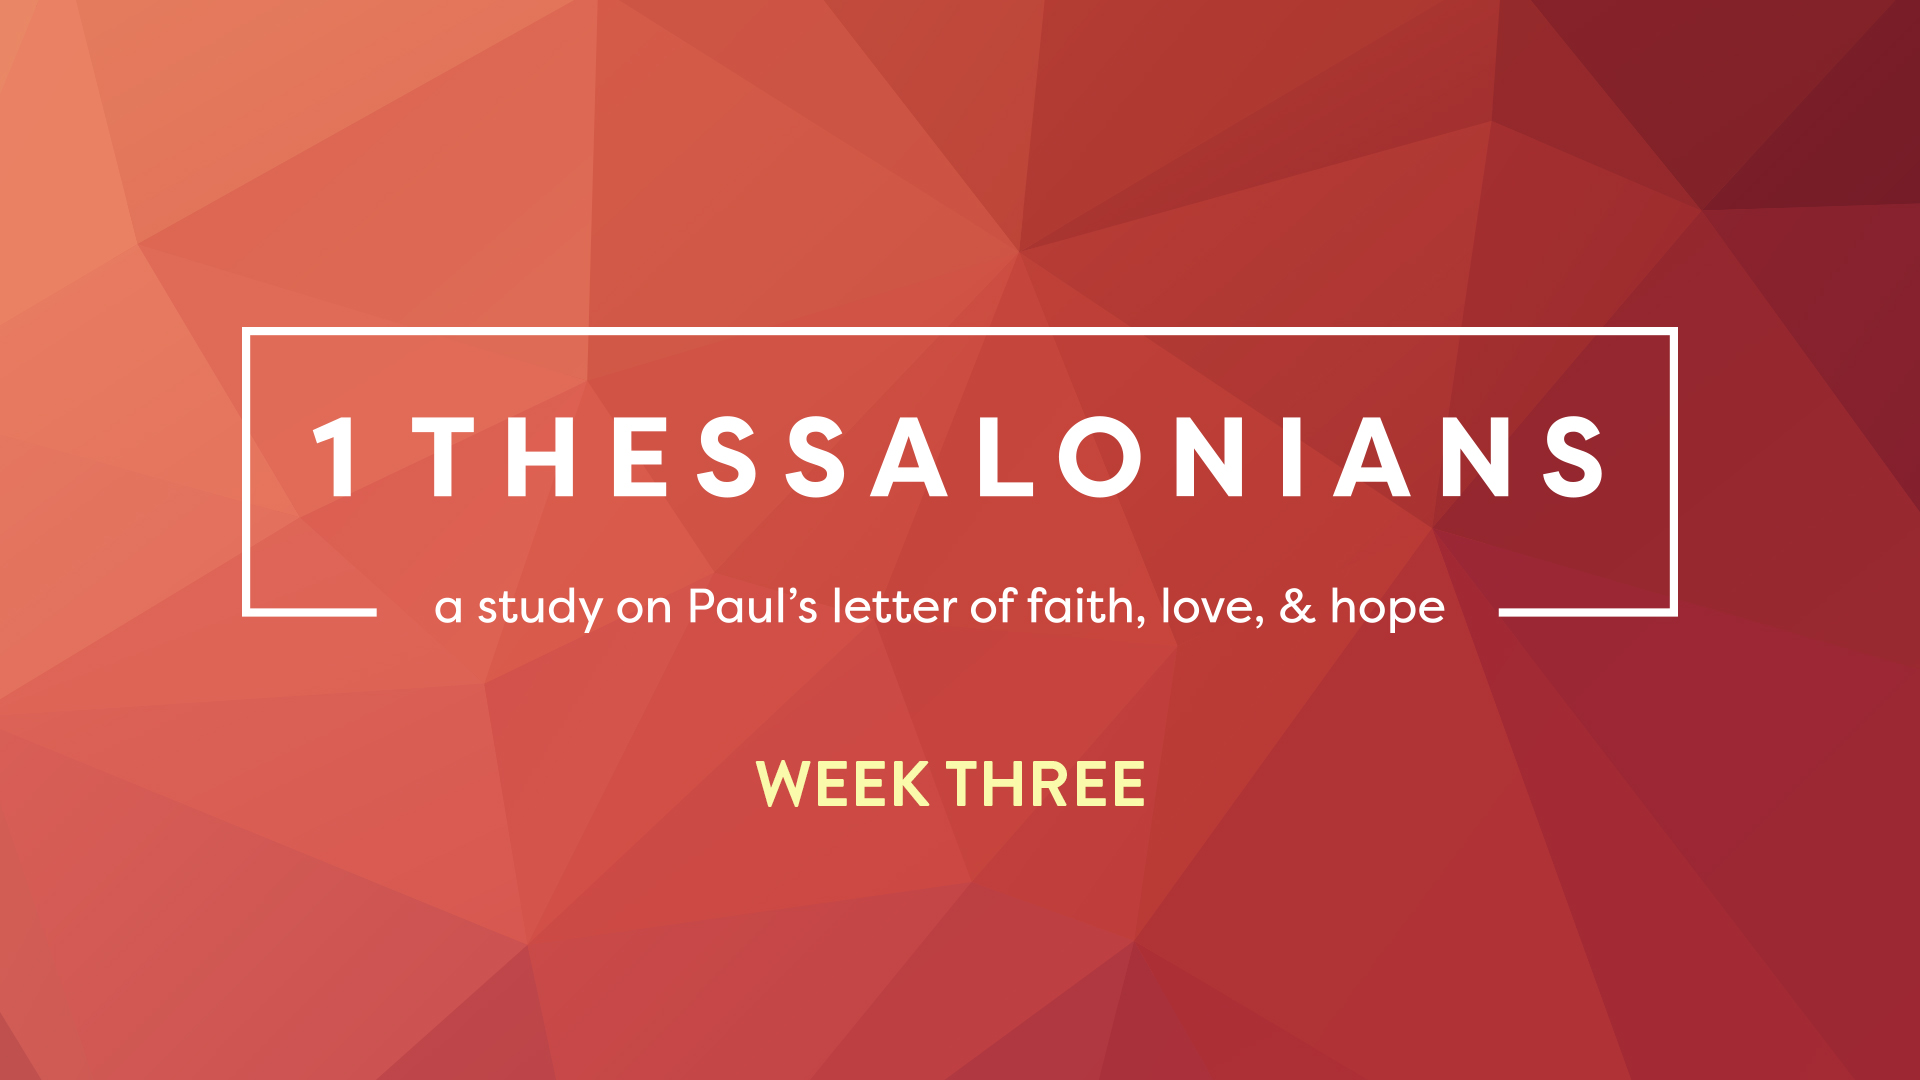 1 Thessalonians: Week Three